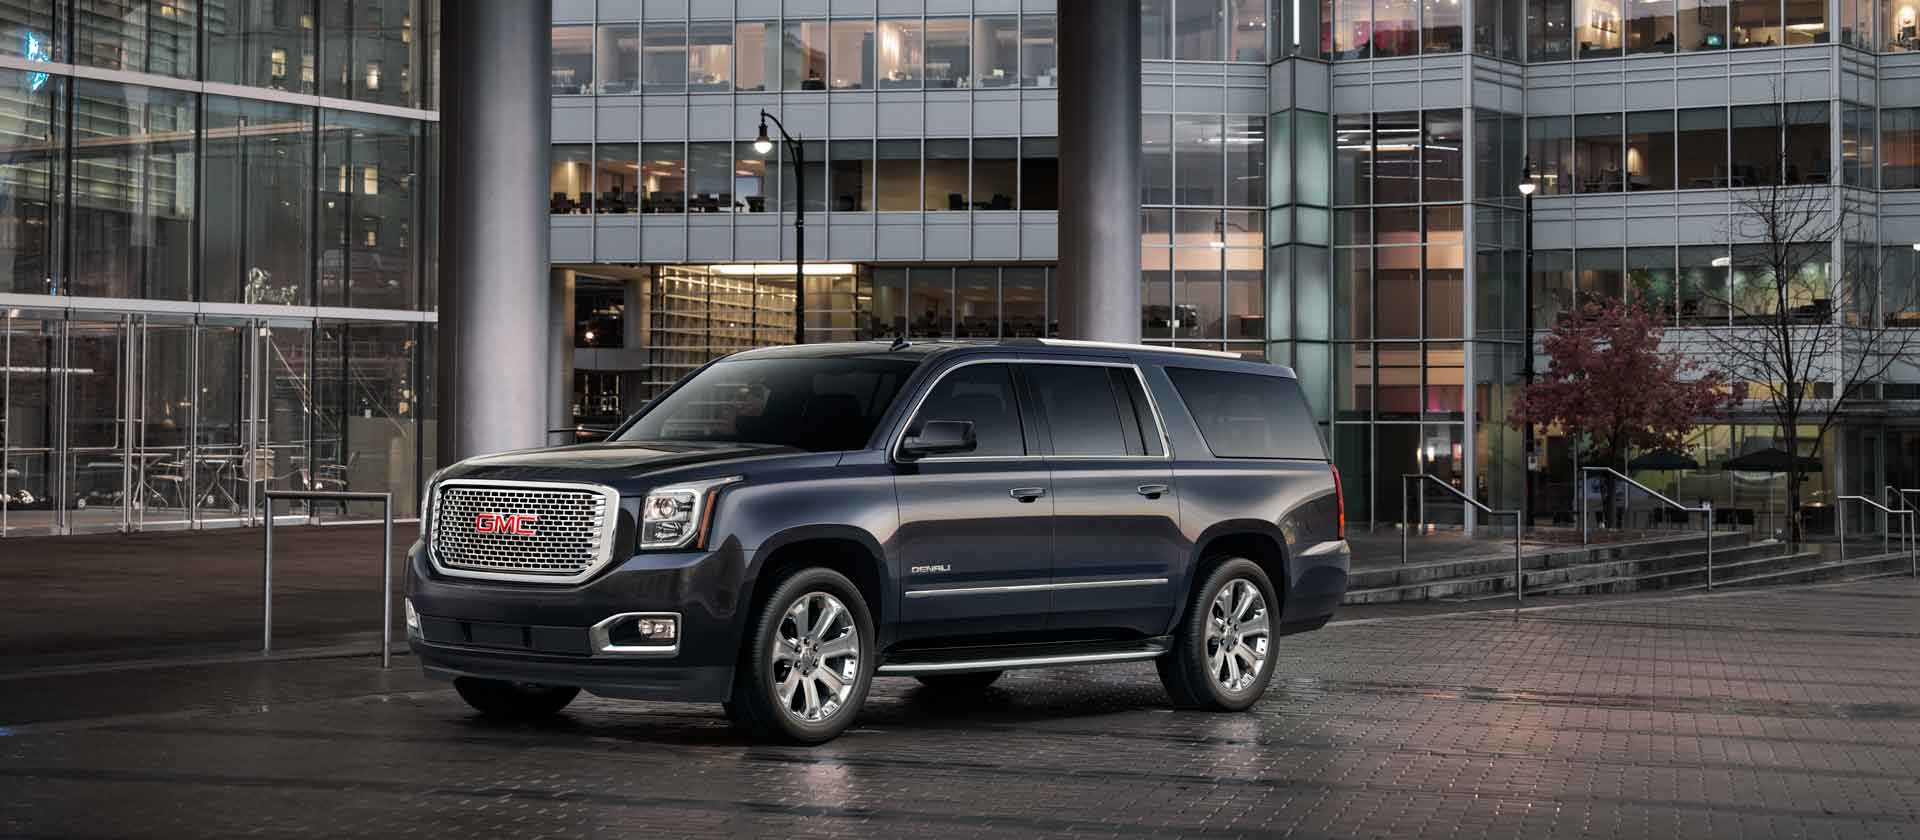 2015 Gmc Yukon Xl Denali 4wd Is Ultimate Family Vacation Machine